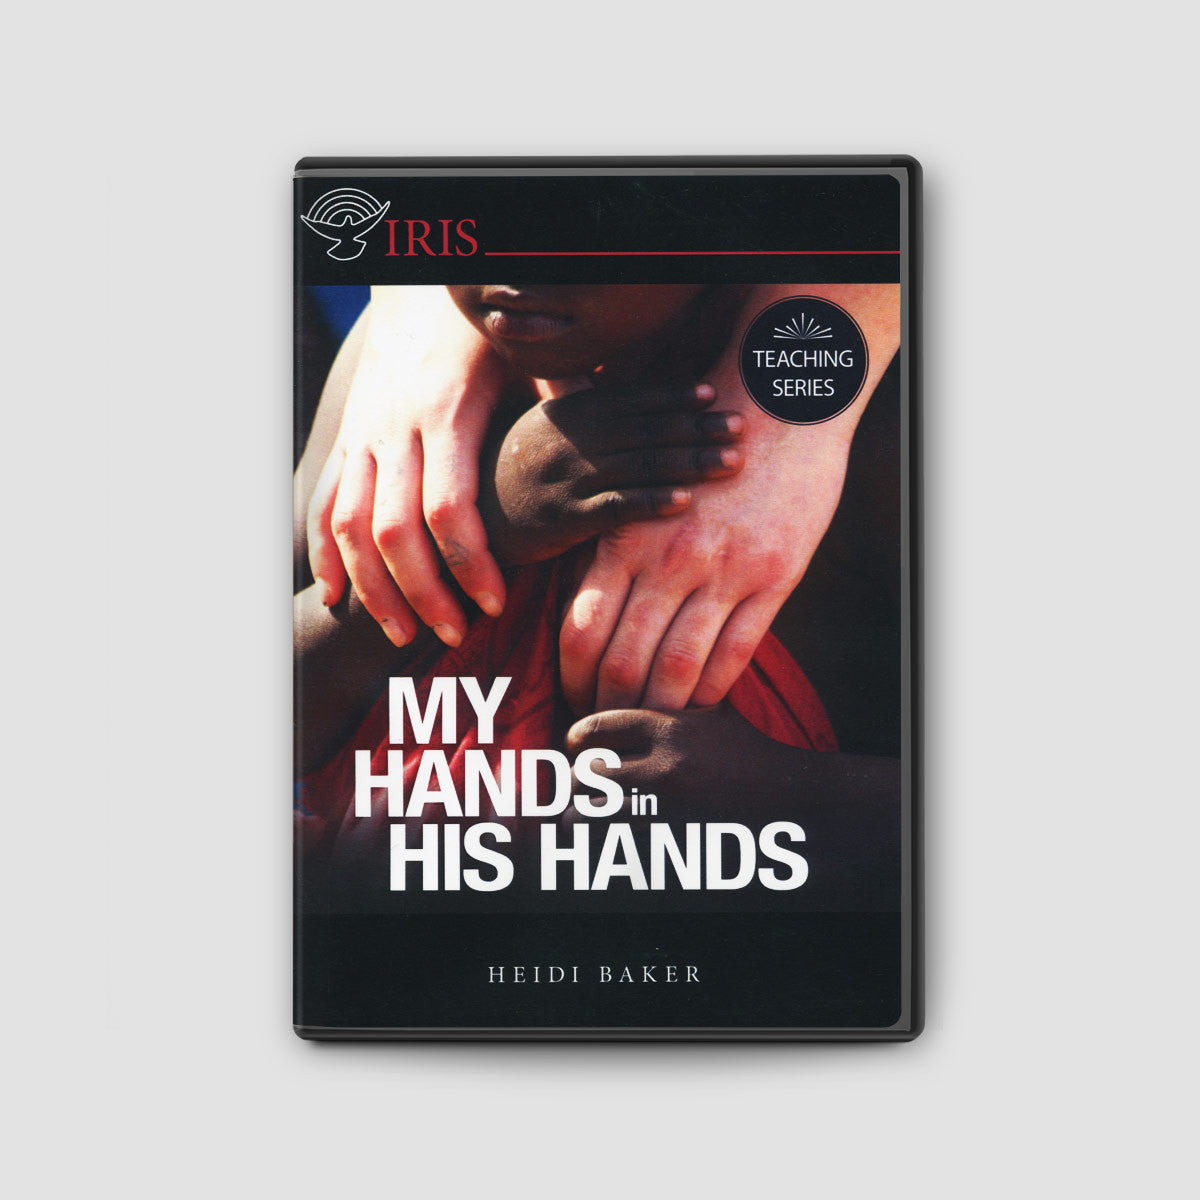 My Hands in His Hands